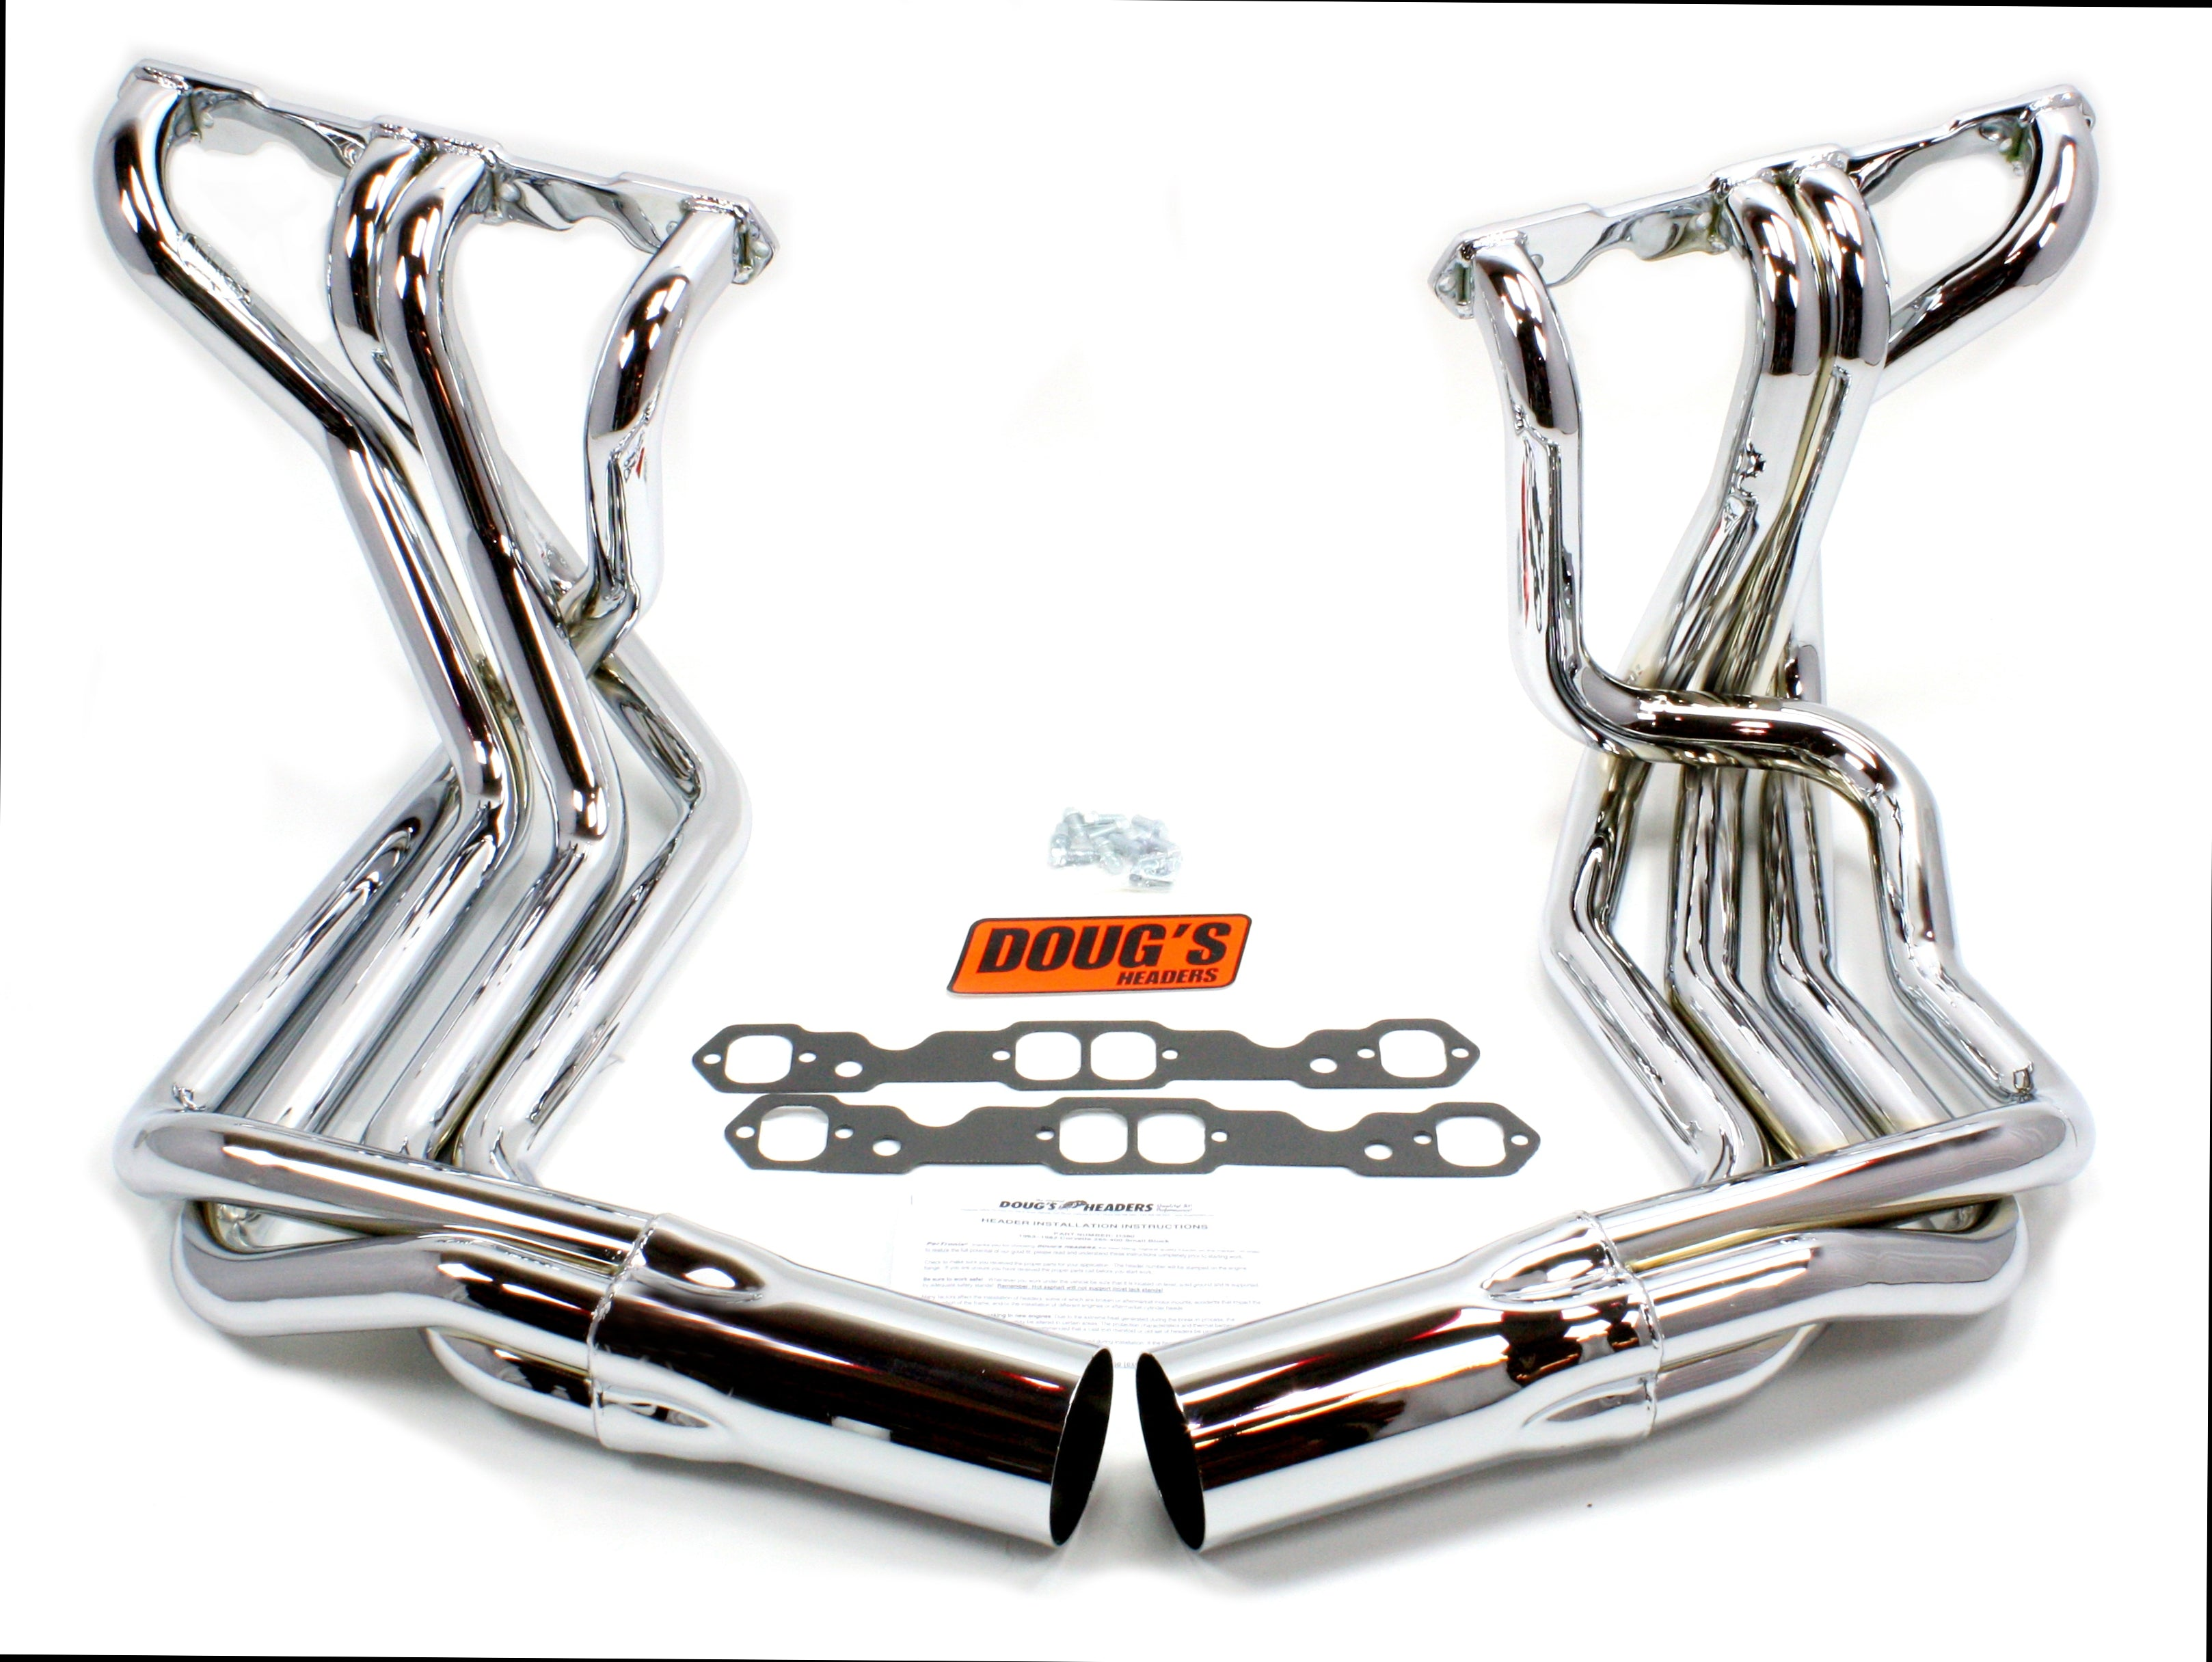 "Doug's Headers D380-SS 1 7/8"" 4-Tube Full Length Header Chevrolet Corvette Small Block Chevrolet 63-82 Sidemount Polished 304 Stainless Steel"